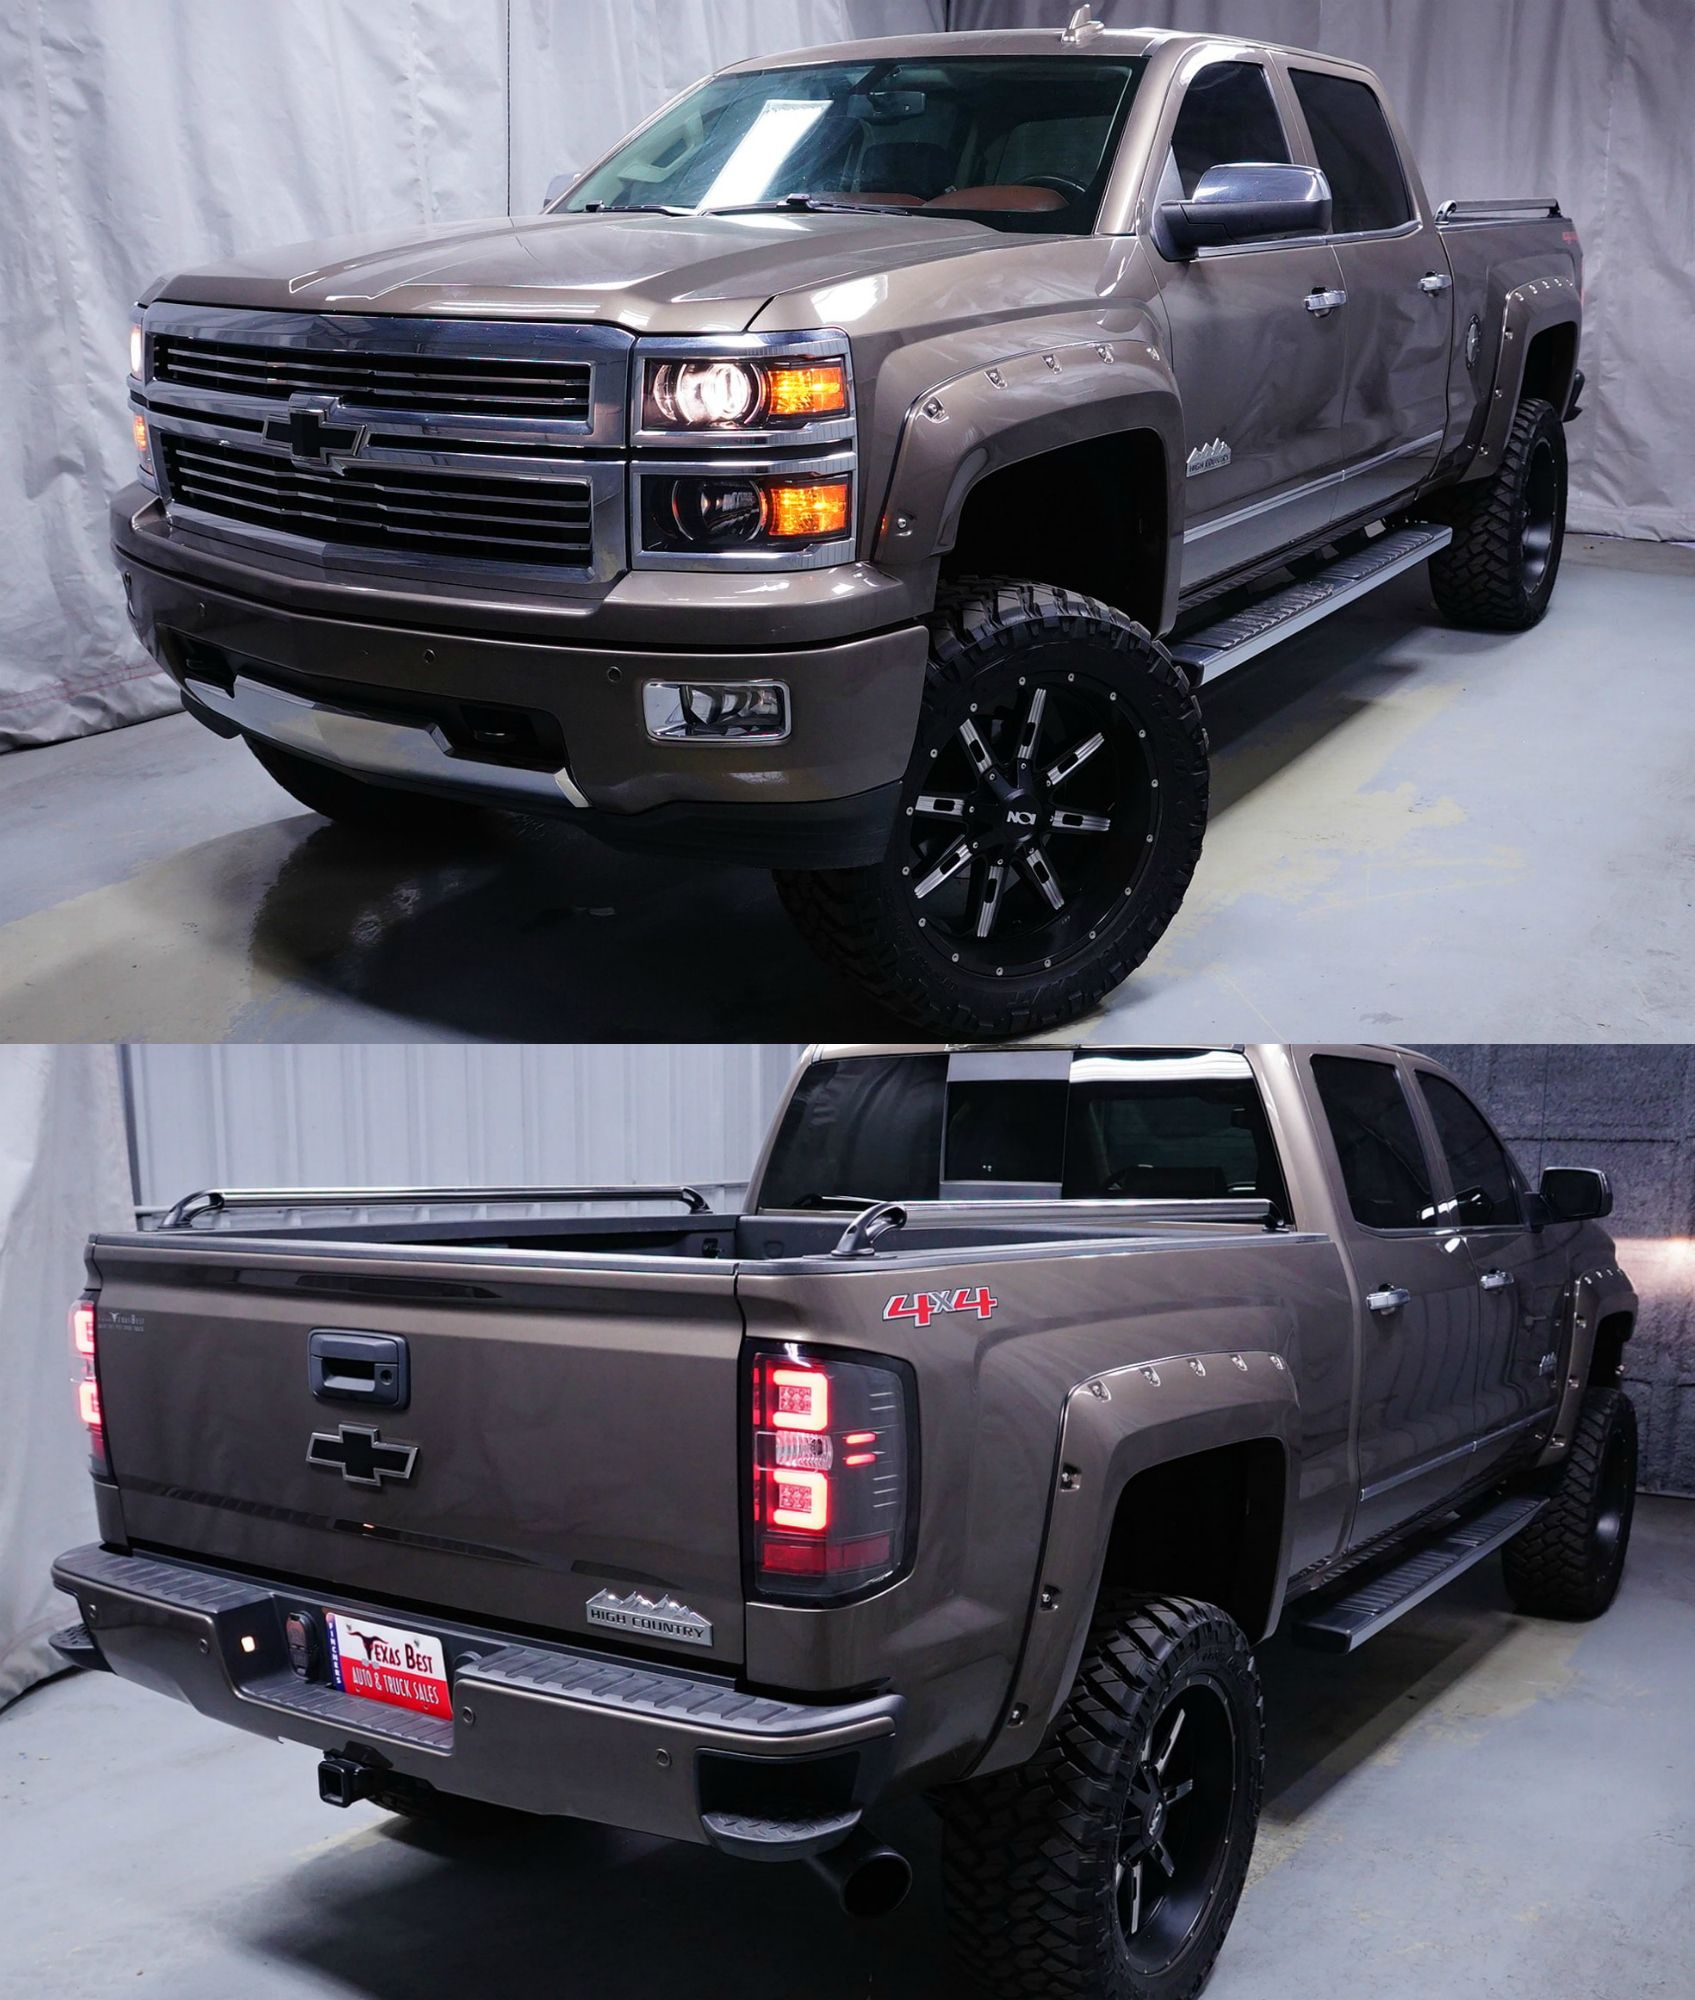 New Inventory Daily Customlifted 2015 Chevrolet Silverado 1500 Highcountry For Sale Fincher S Texas Bes Chevrolet Silverado Truck Accessories Trucks